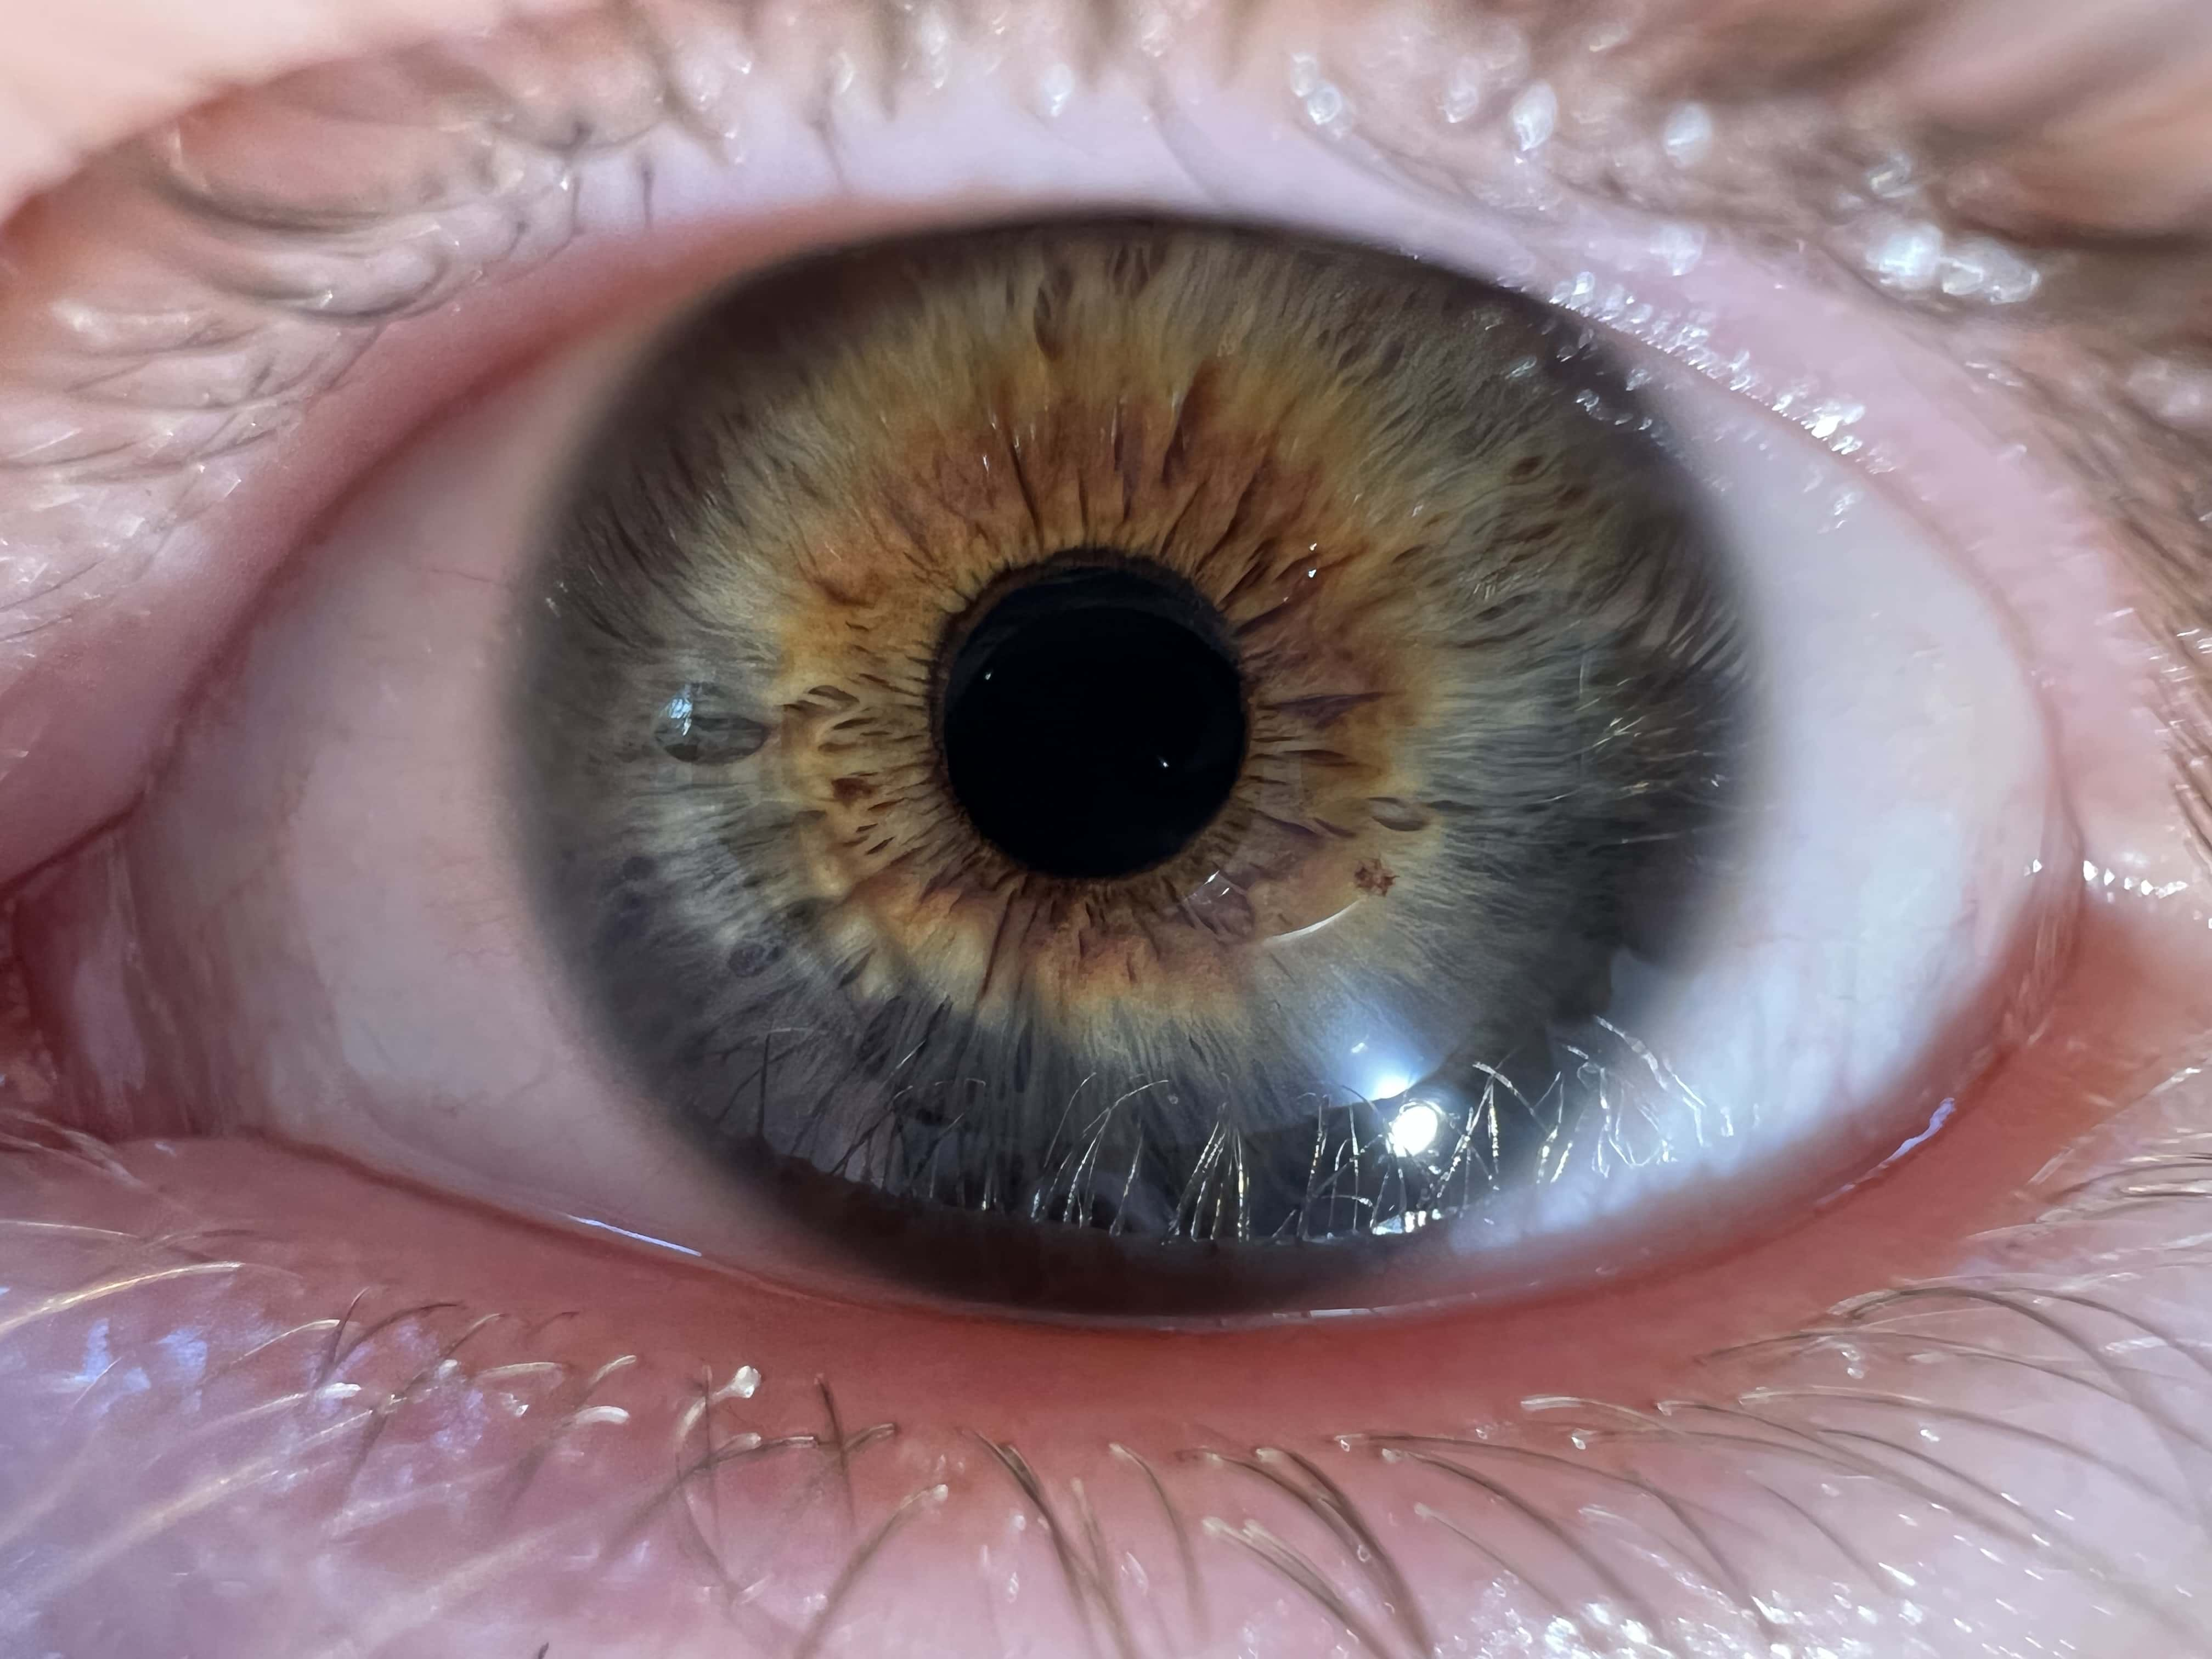 Macro test shot of eyeball from iPhone 13 Pro. Look at that detail in the iris!